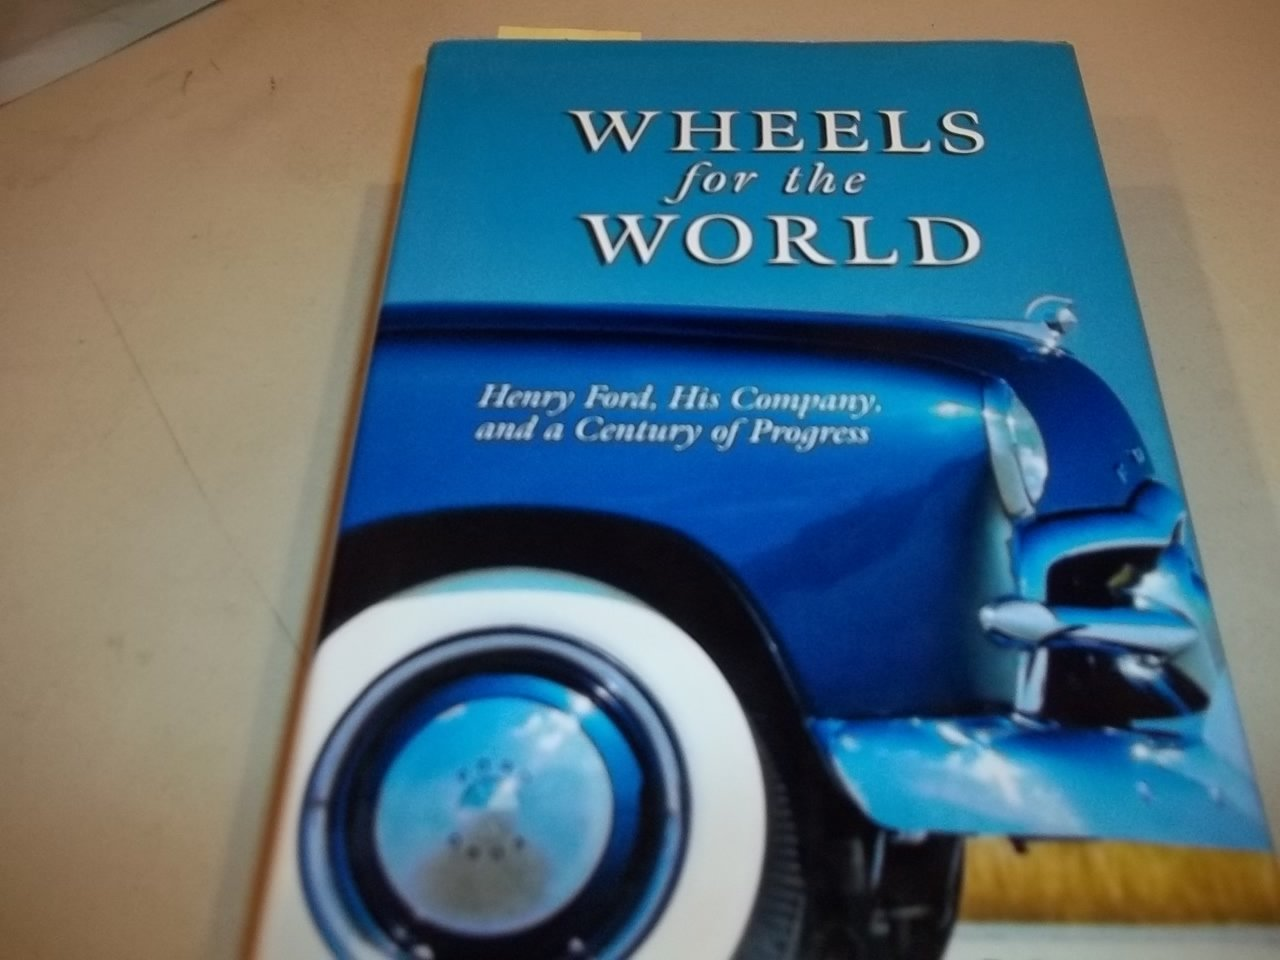 Wheels for the World: Henry Ford, His Company, and a Century of Progress, 1903-2003 pdf epub